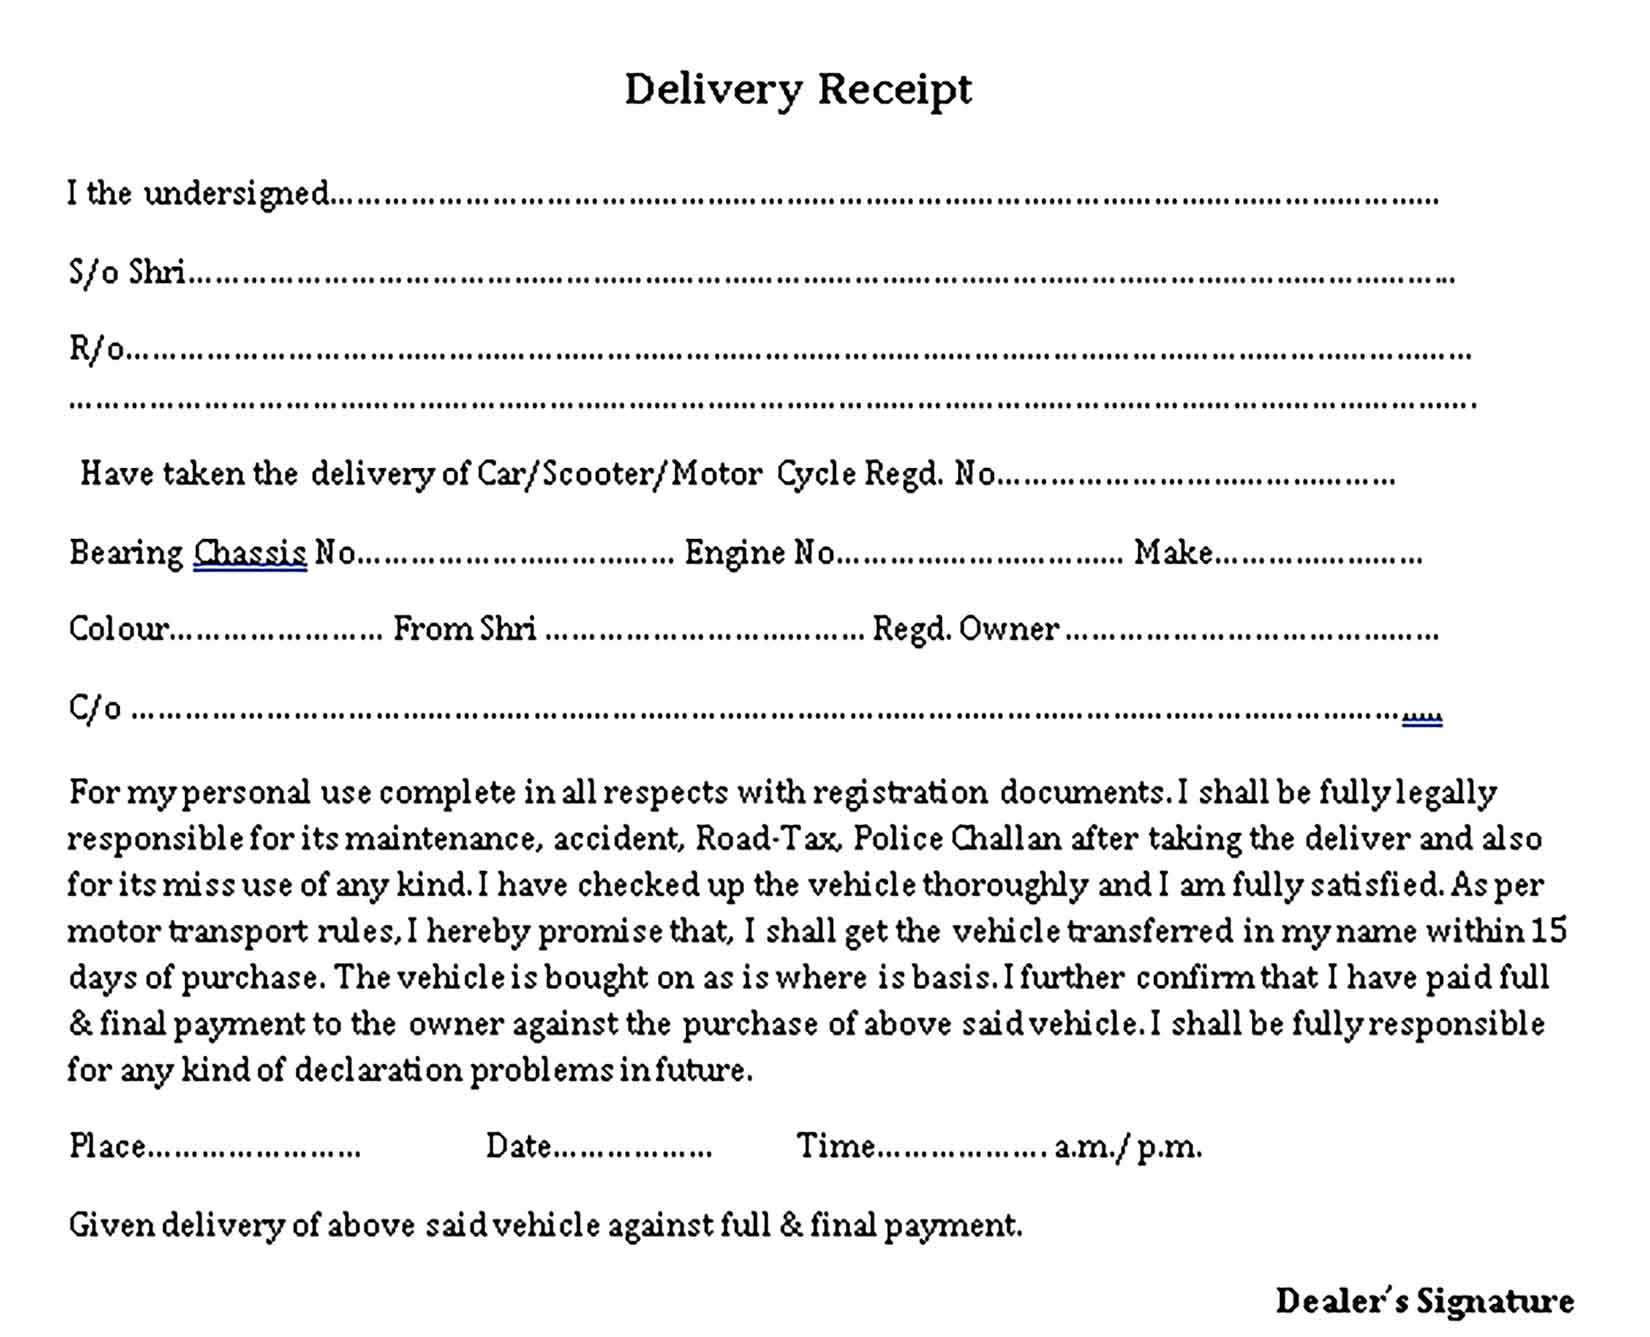 Sample Delivery Receipt Templates 1